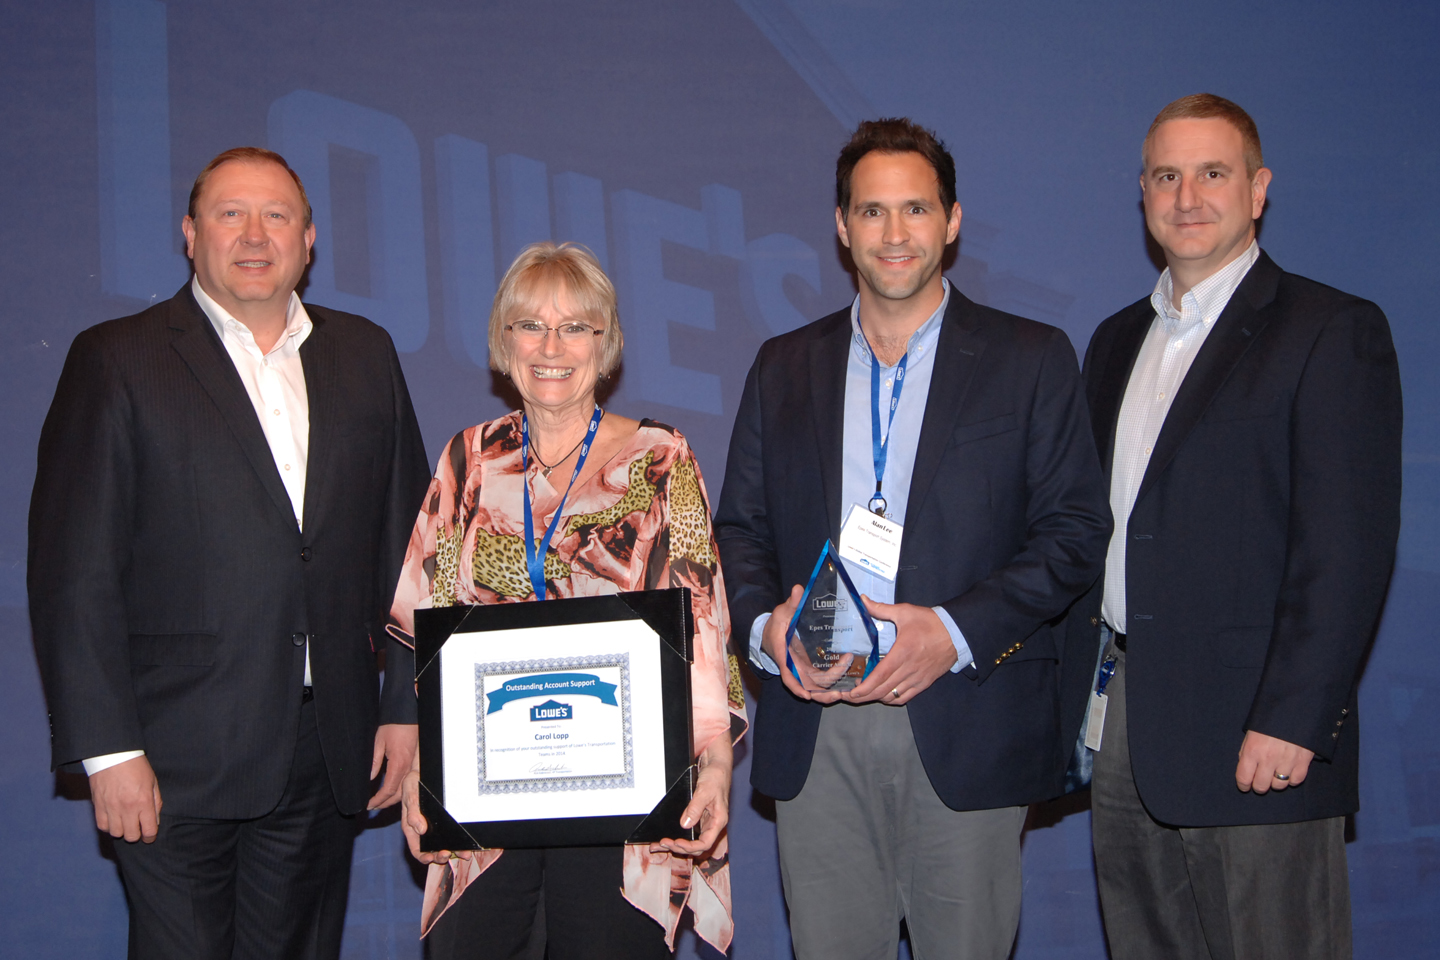 Epes Transport Recognized with 3 Service Awards at the  Lowe's Global Carrier Conference